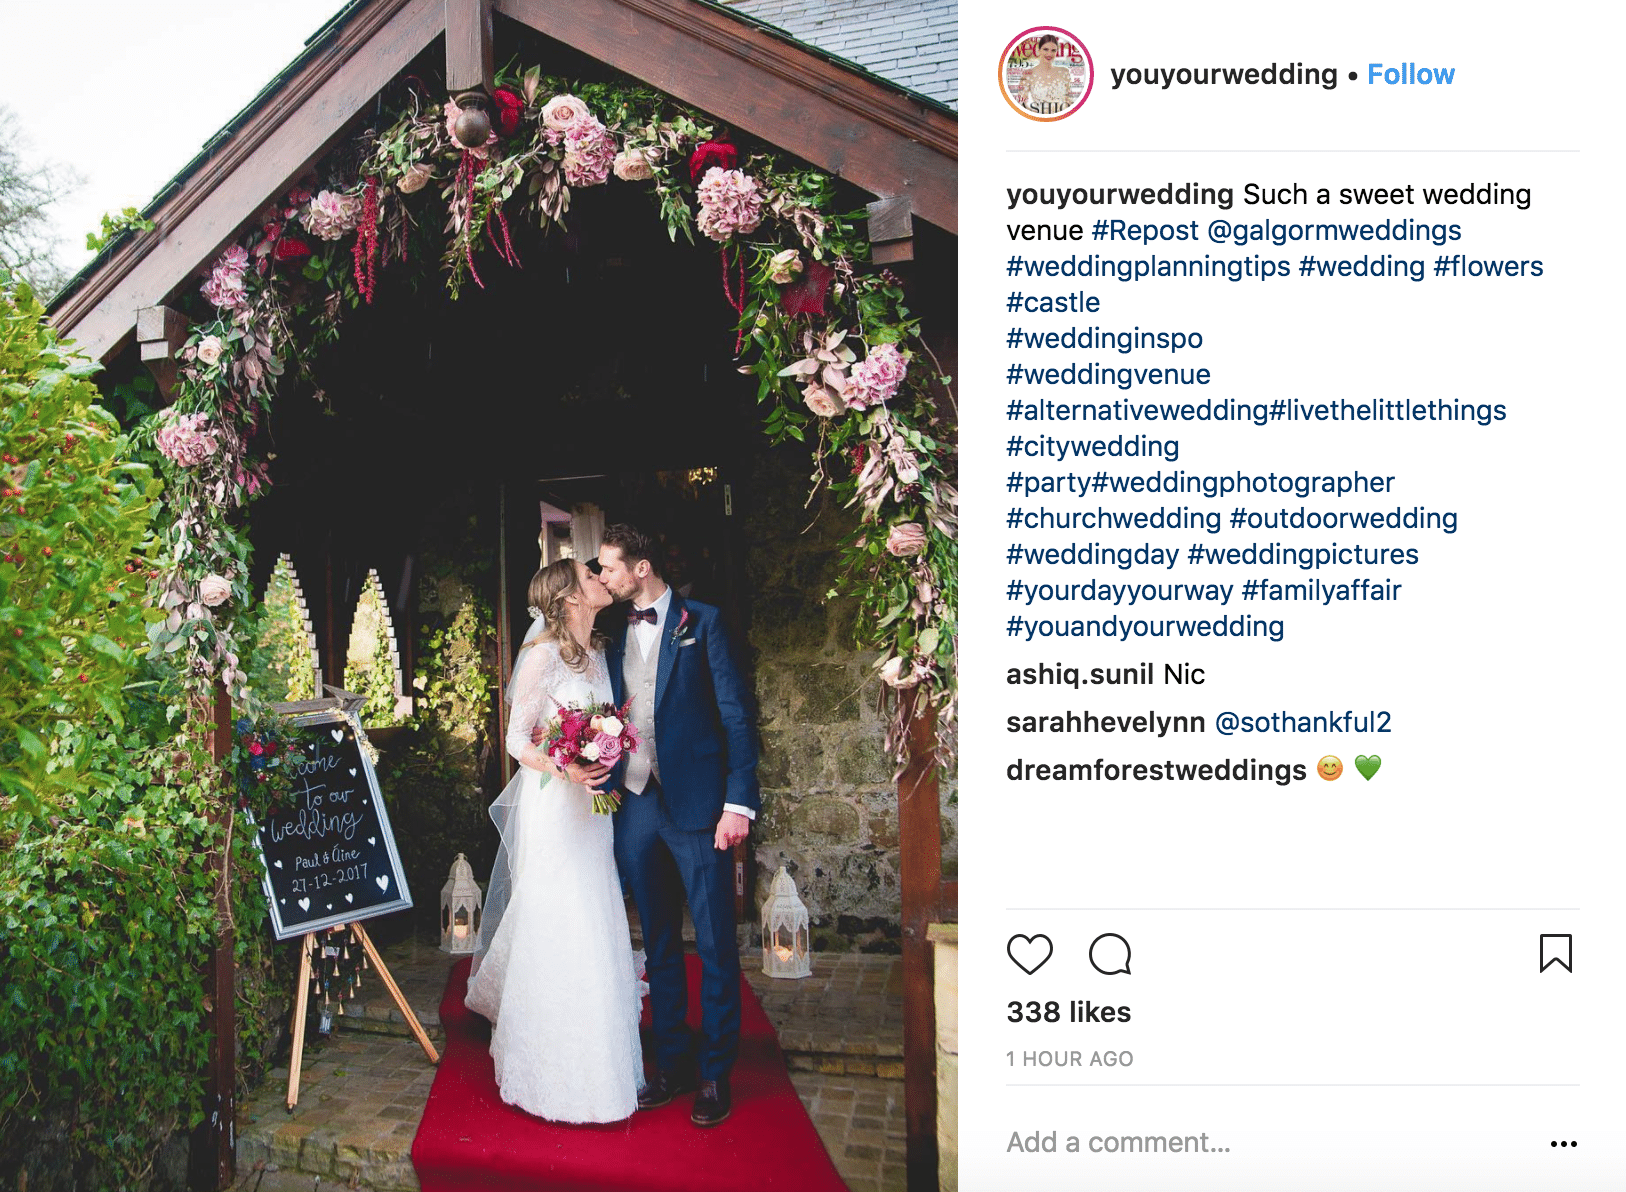 Instagram accounts to follow-youyourwedding